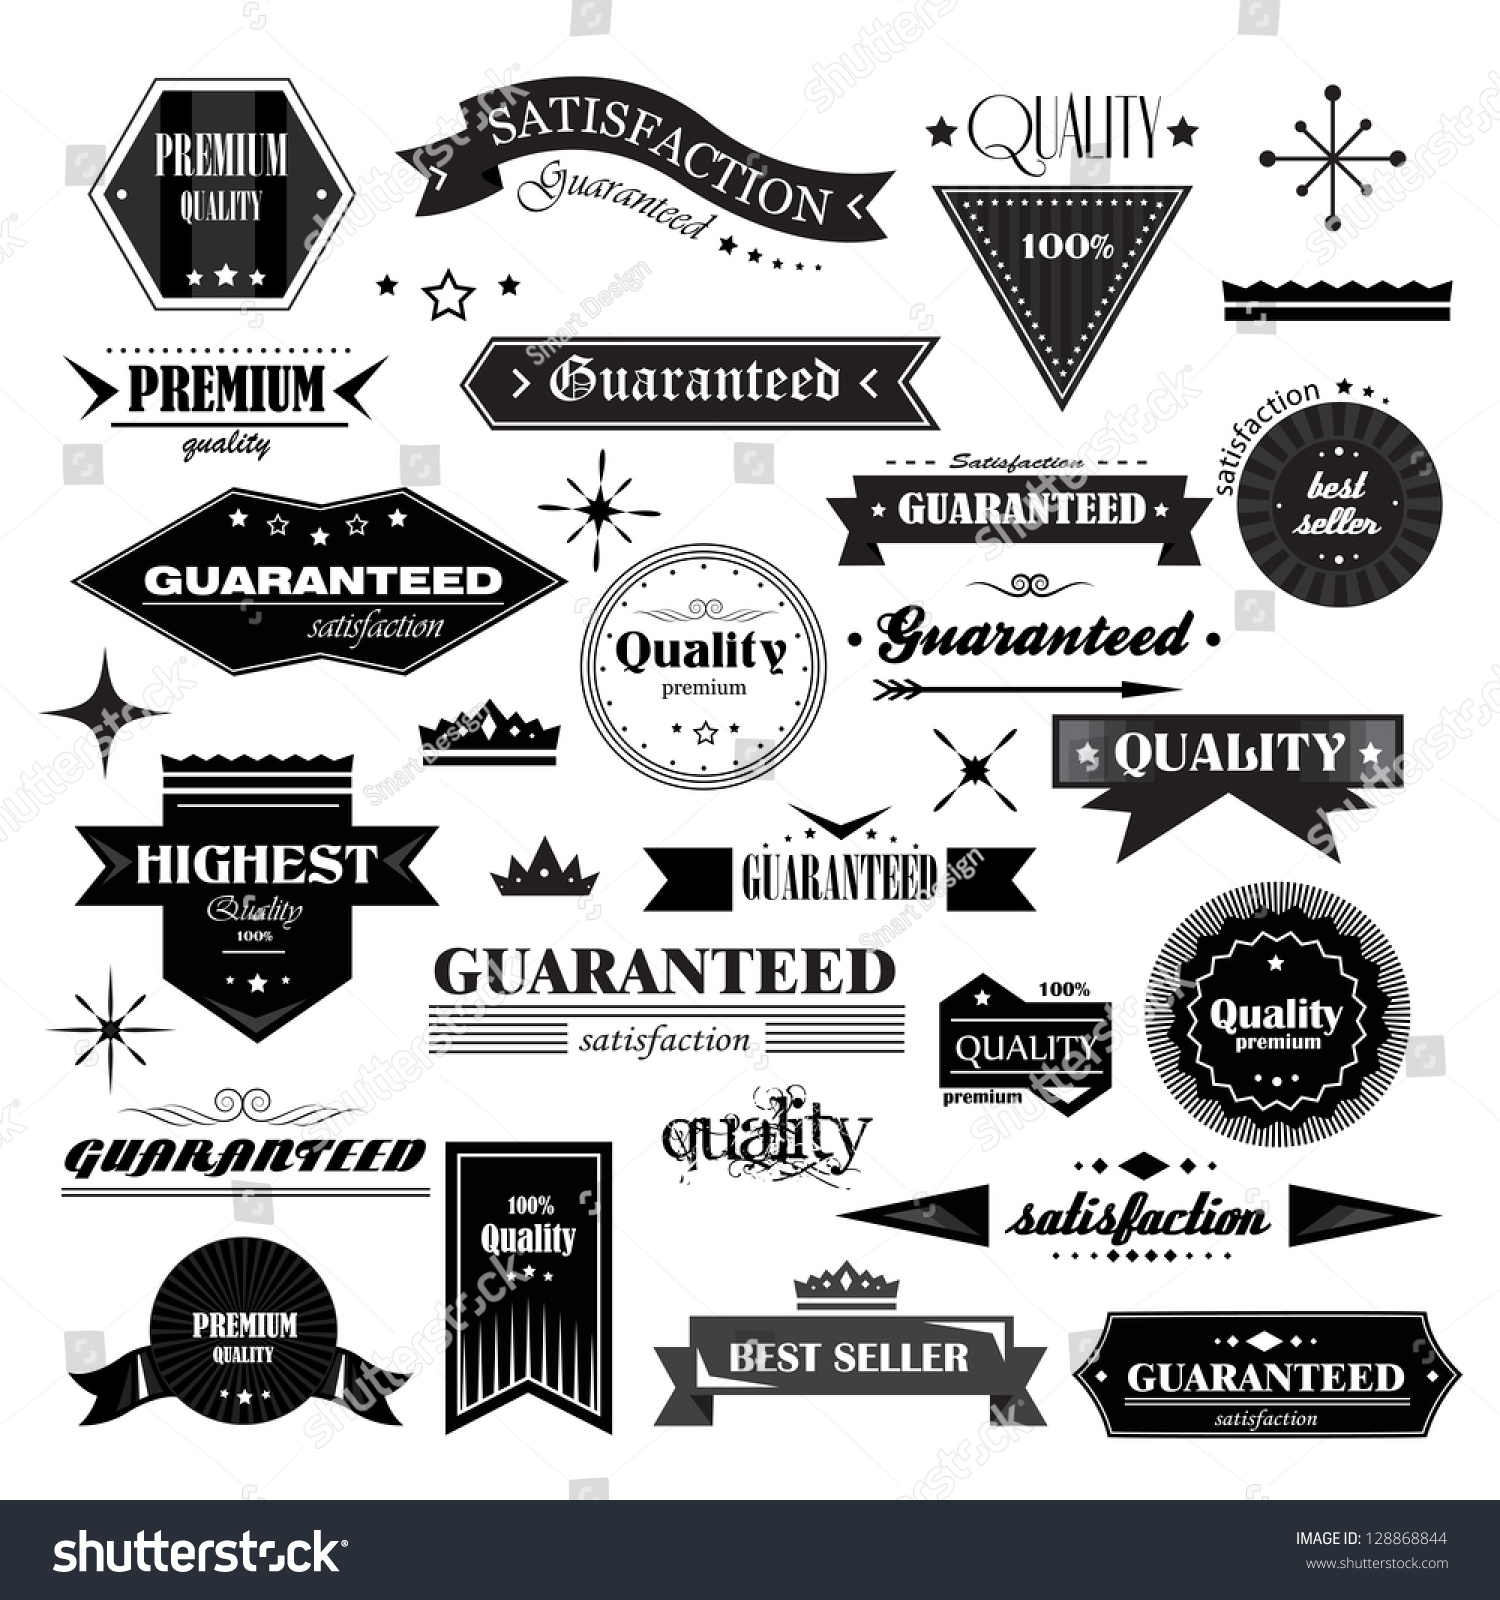 Retro Design Elements Labels Retro Style Stock Vector ...